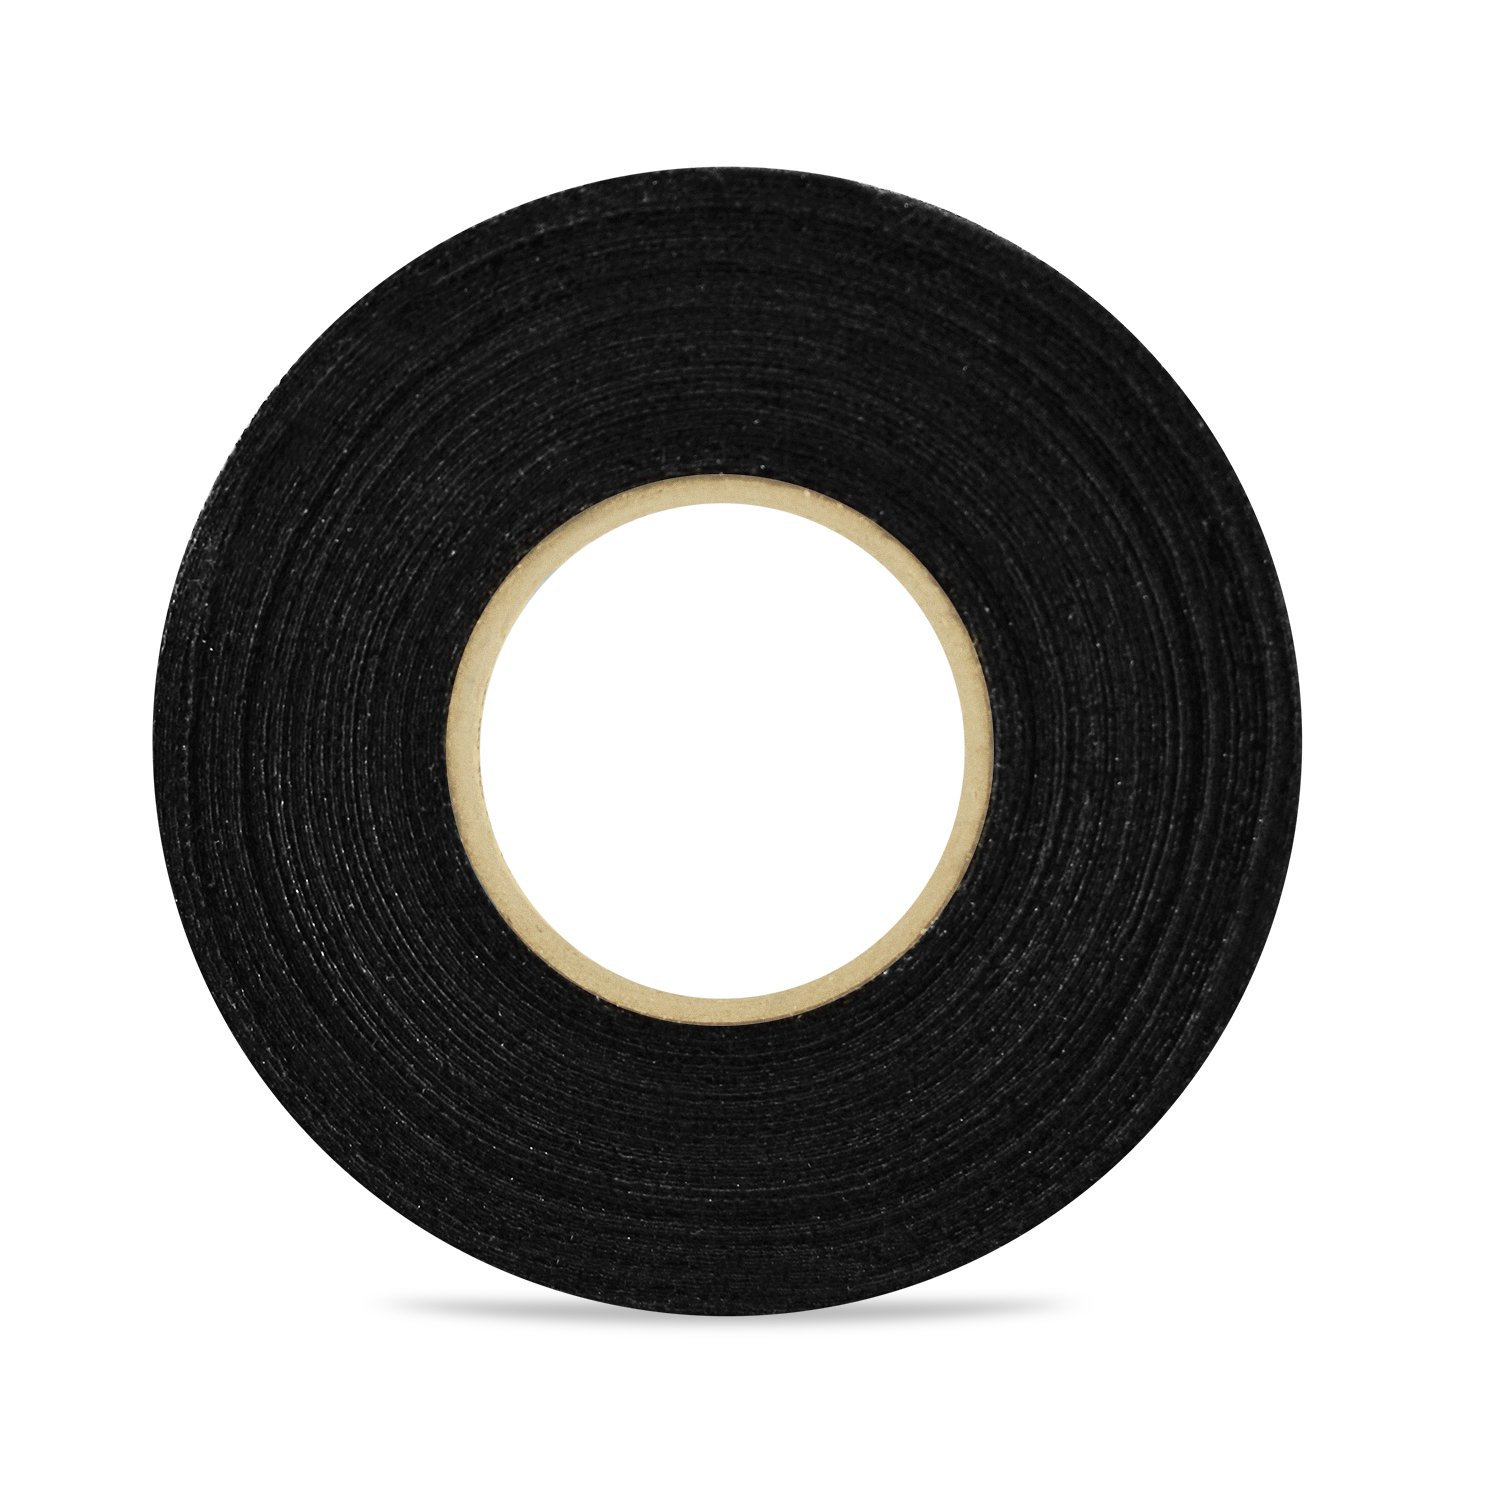 2pcs Wiring Loom Harness Adhesive Cloth Fabric Tape 19mm Heat Resistant 15m Office Products